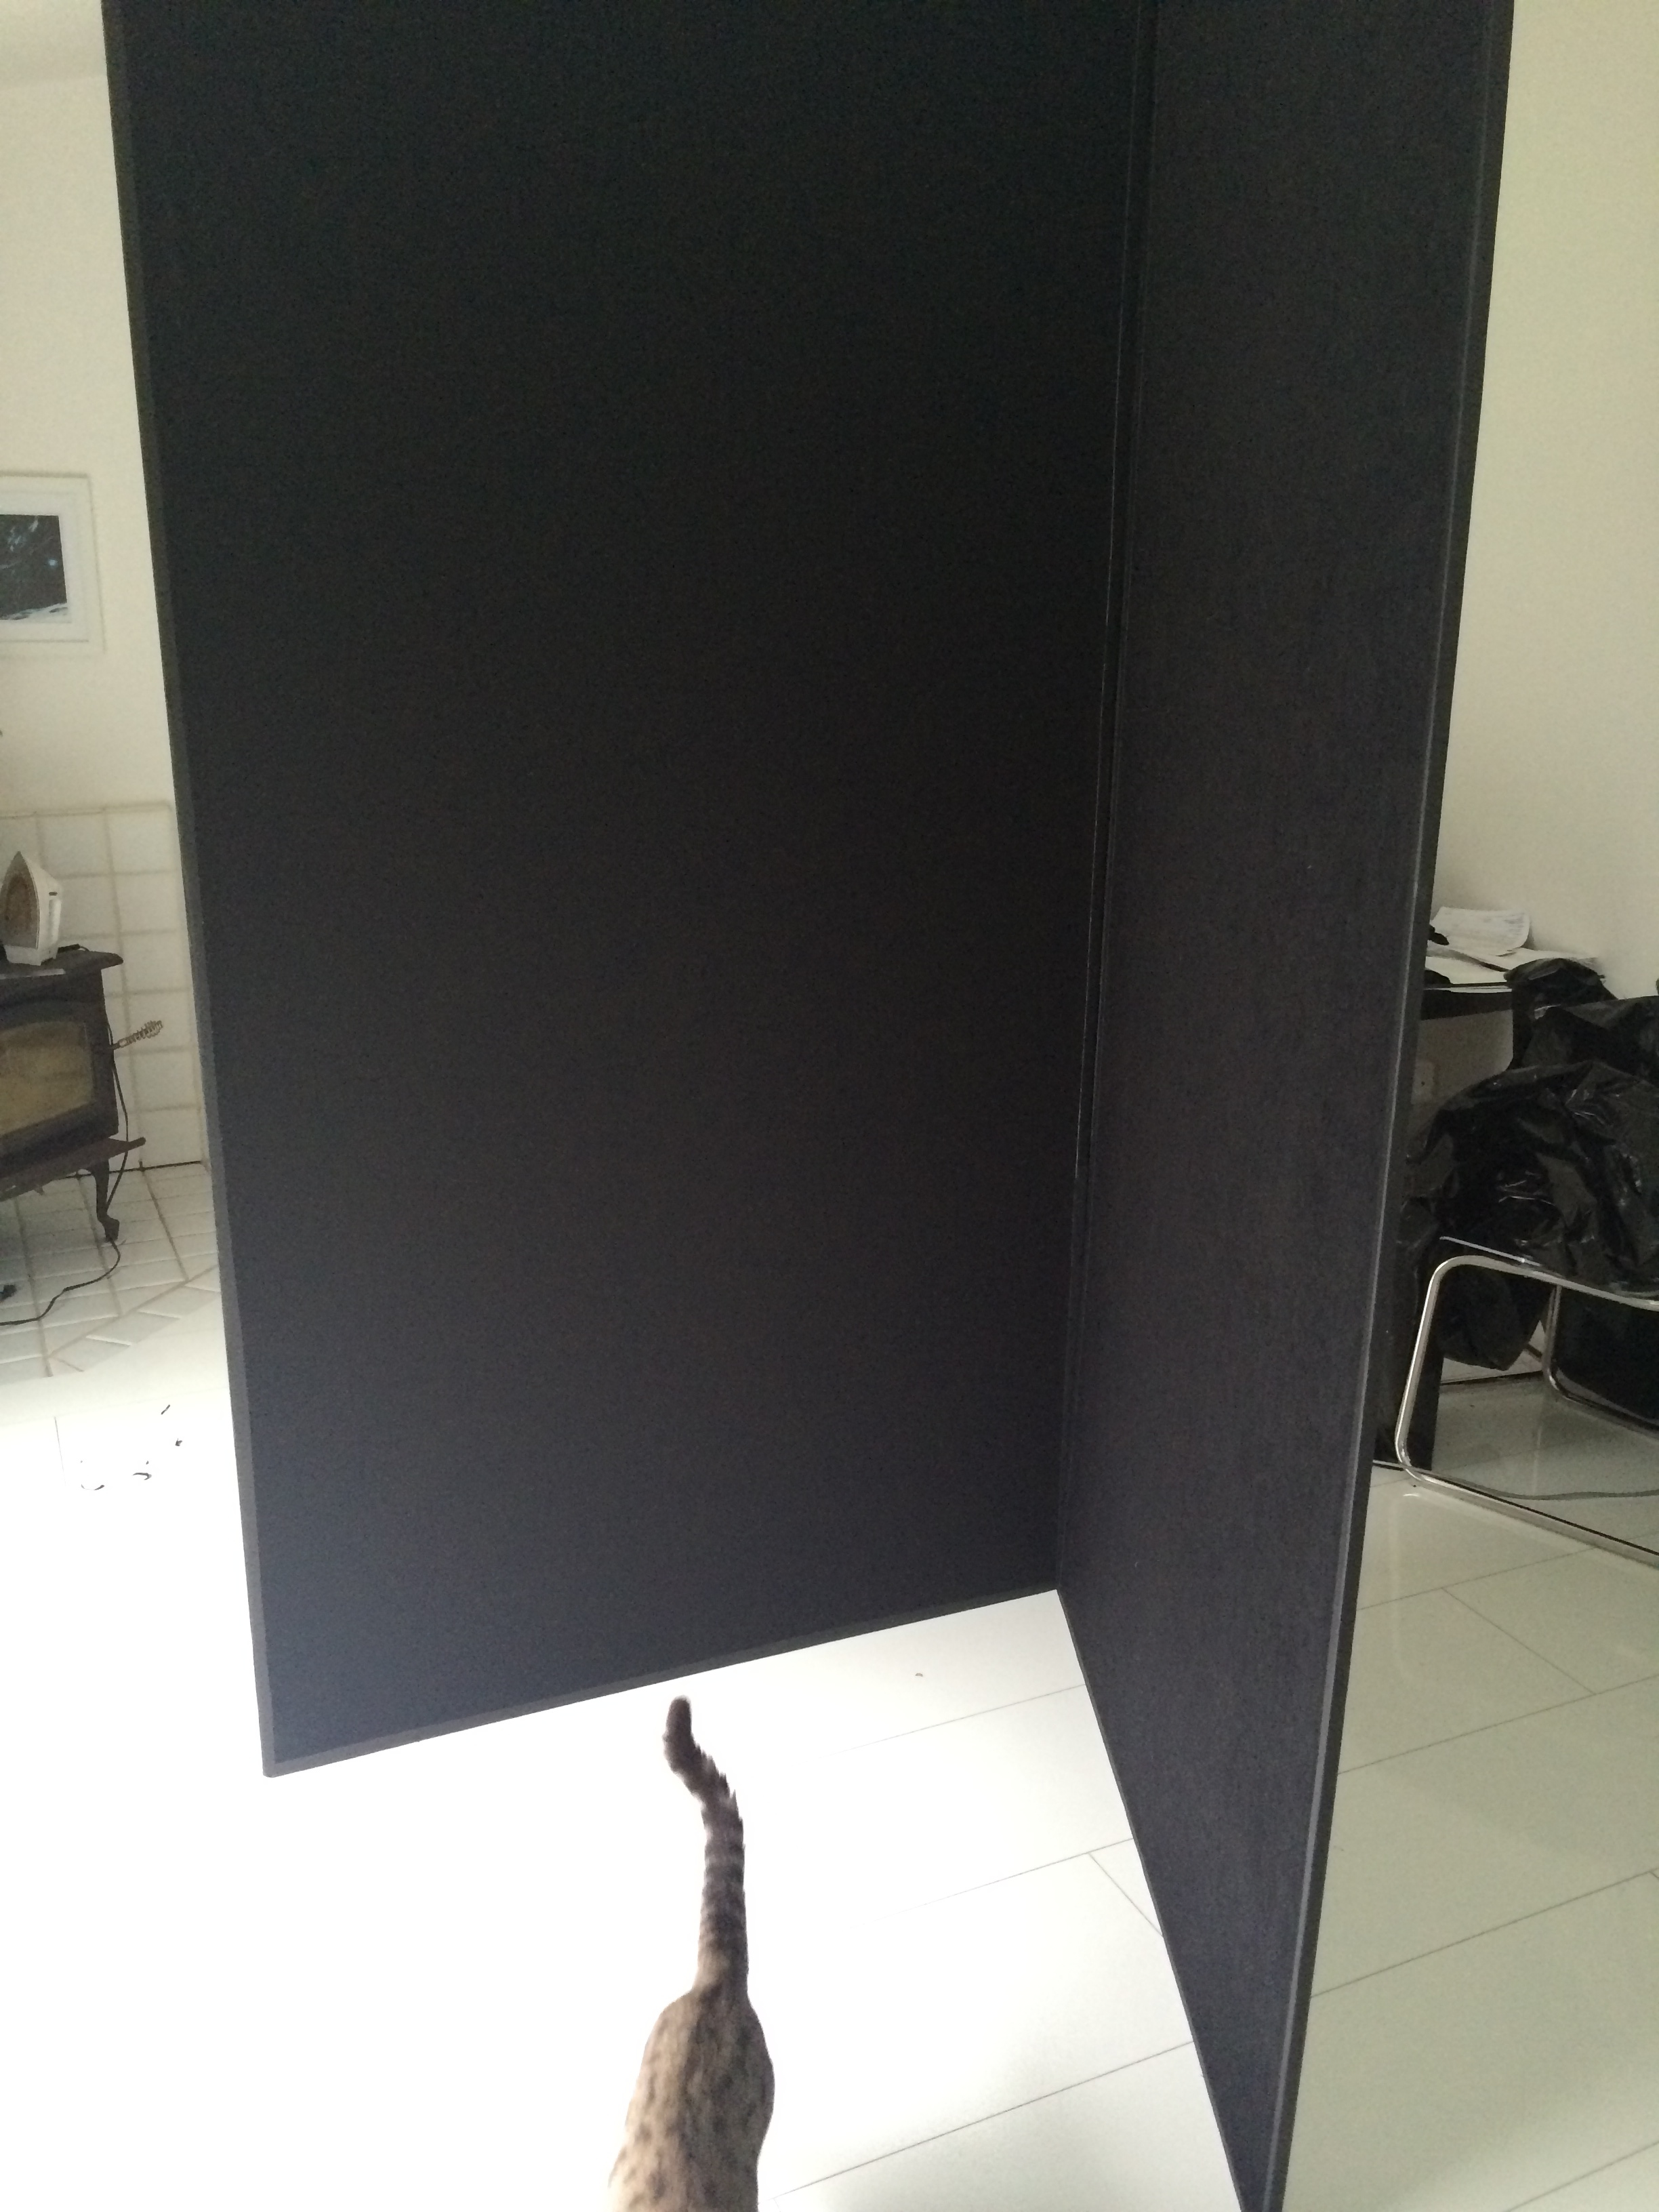 V-flats can be a huge asset to your studio, providing a perfect place to shoot that can be moved about anywhere to fit your lighting requirements. But building them, I found, can be a bit tricky.